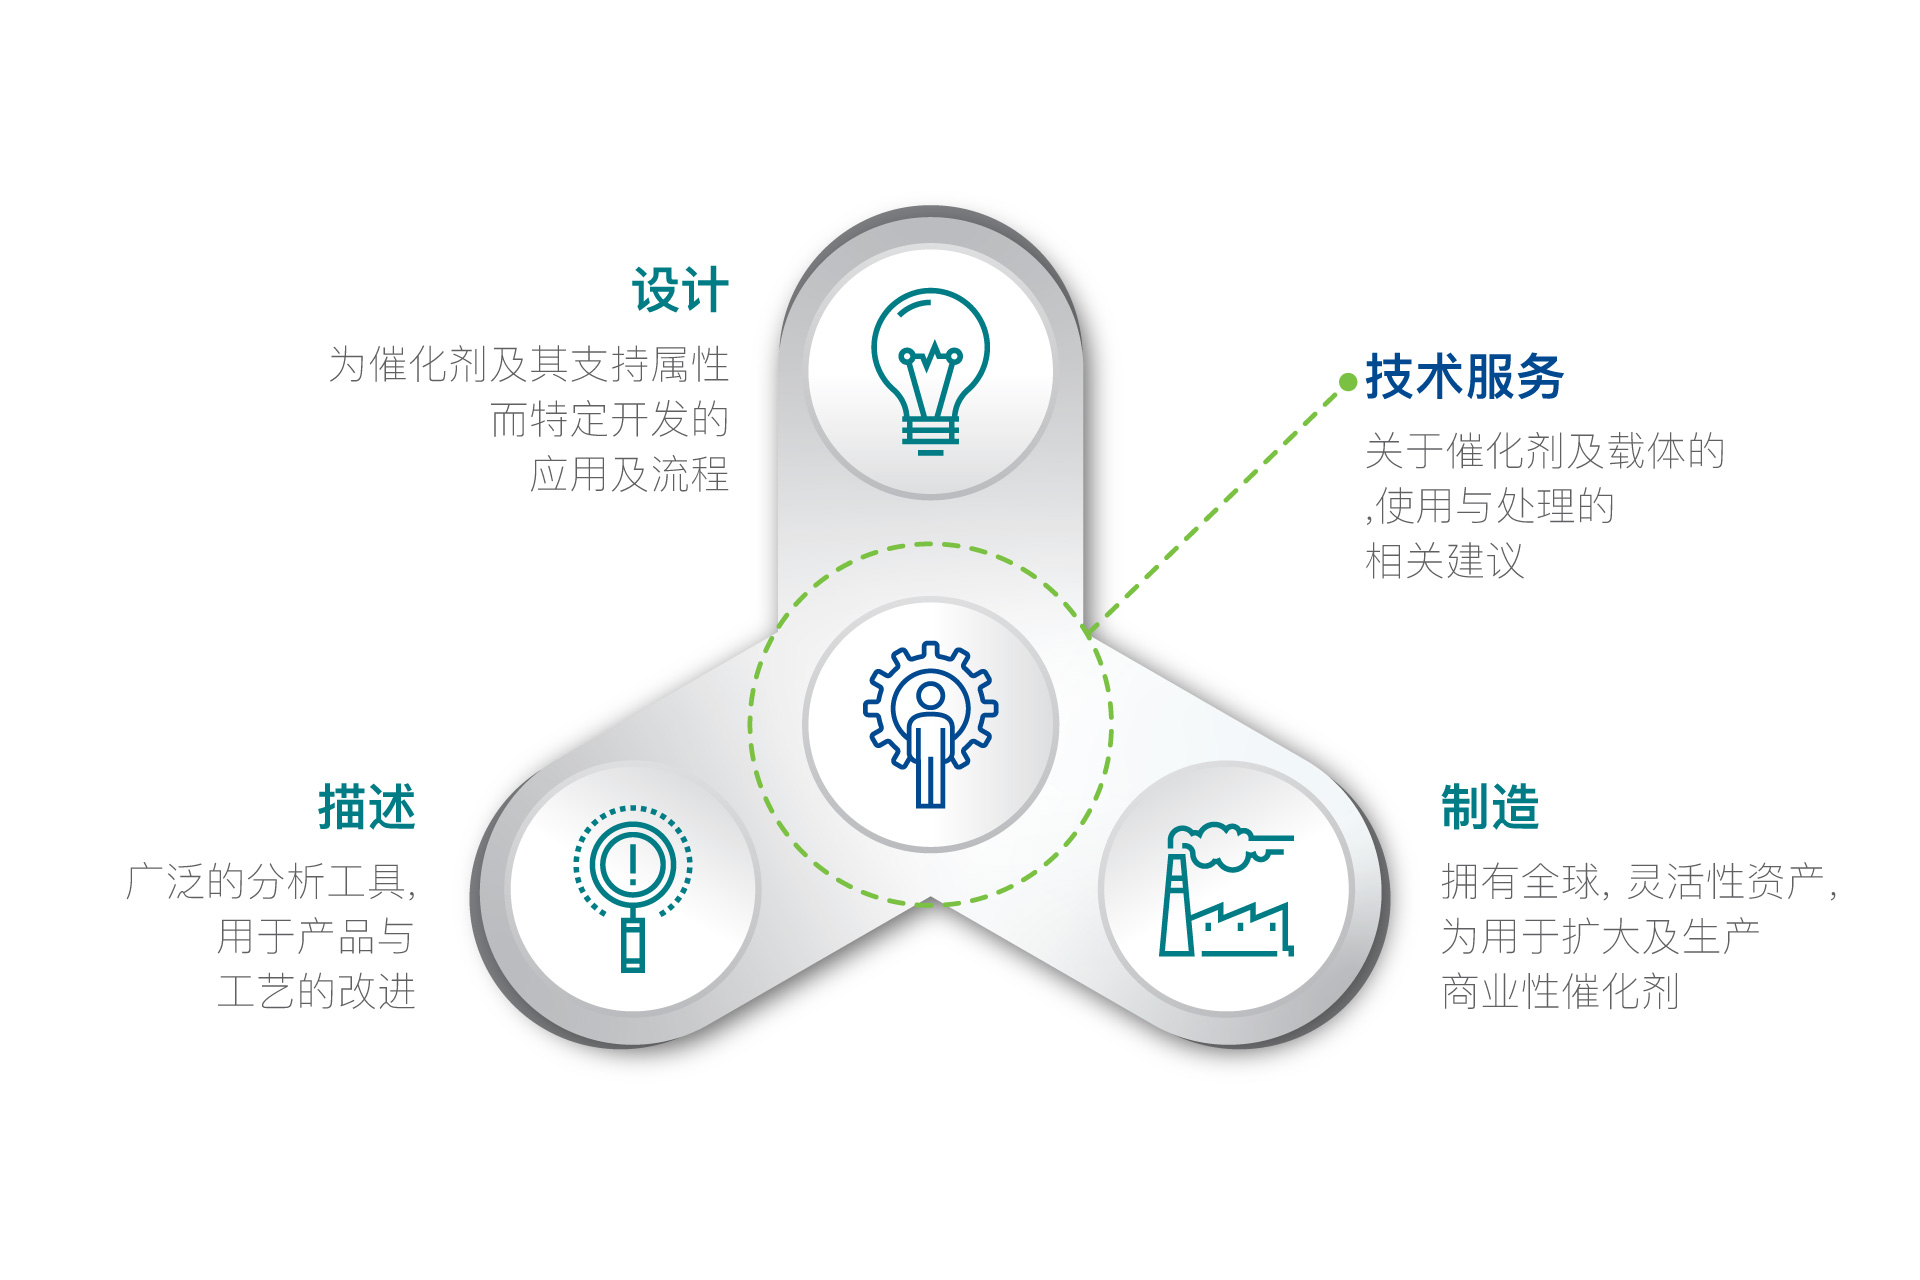 grace-china-custom-catalysts-page-1920x1280_v1_Chinese